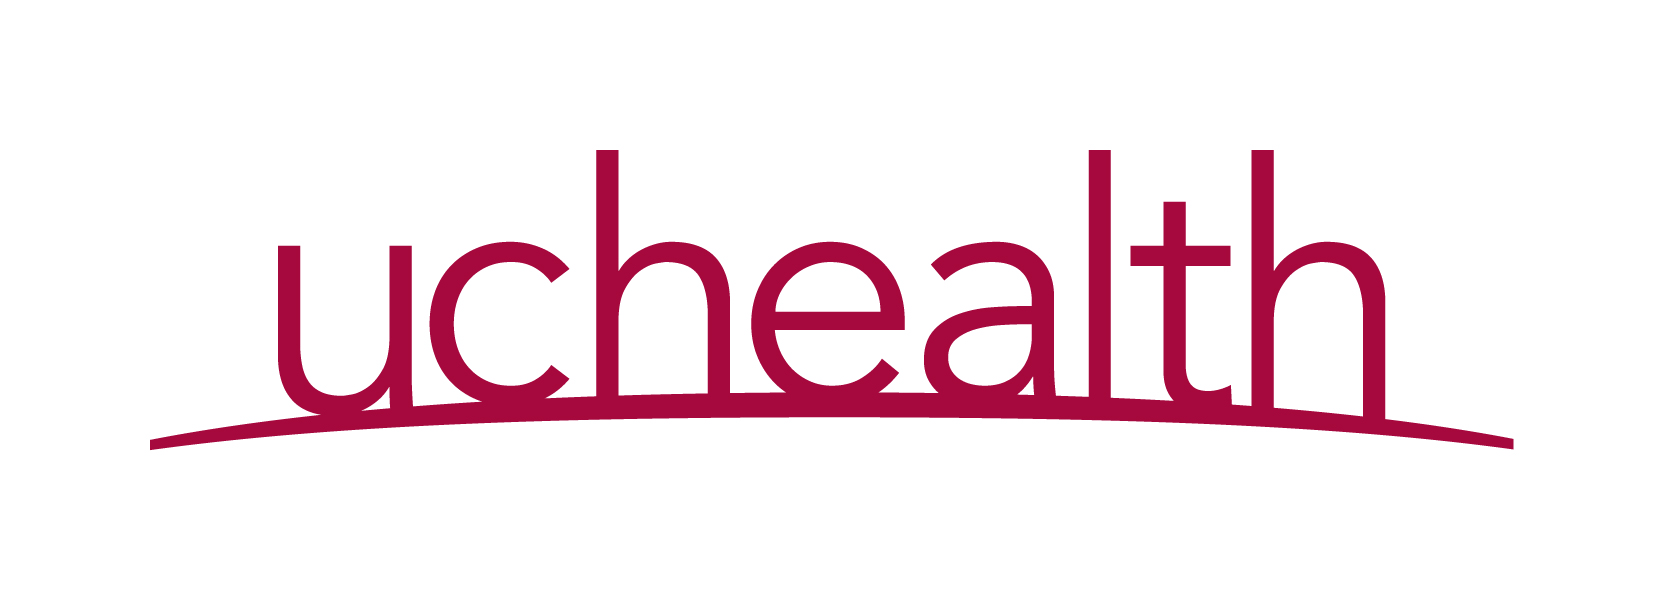 UCHEALTH BLACK